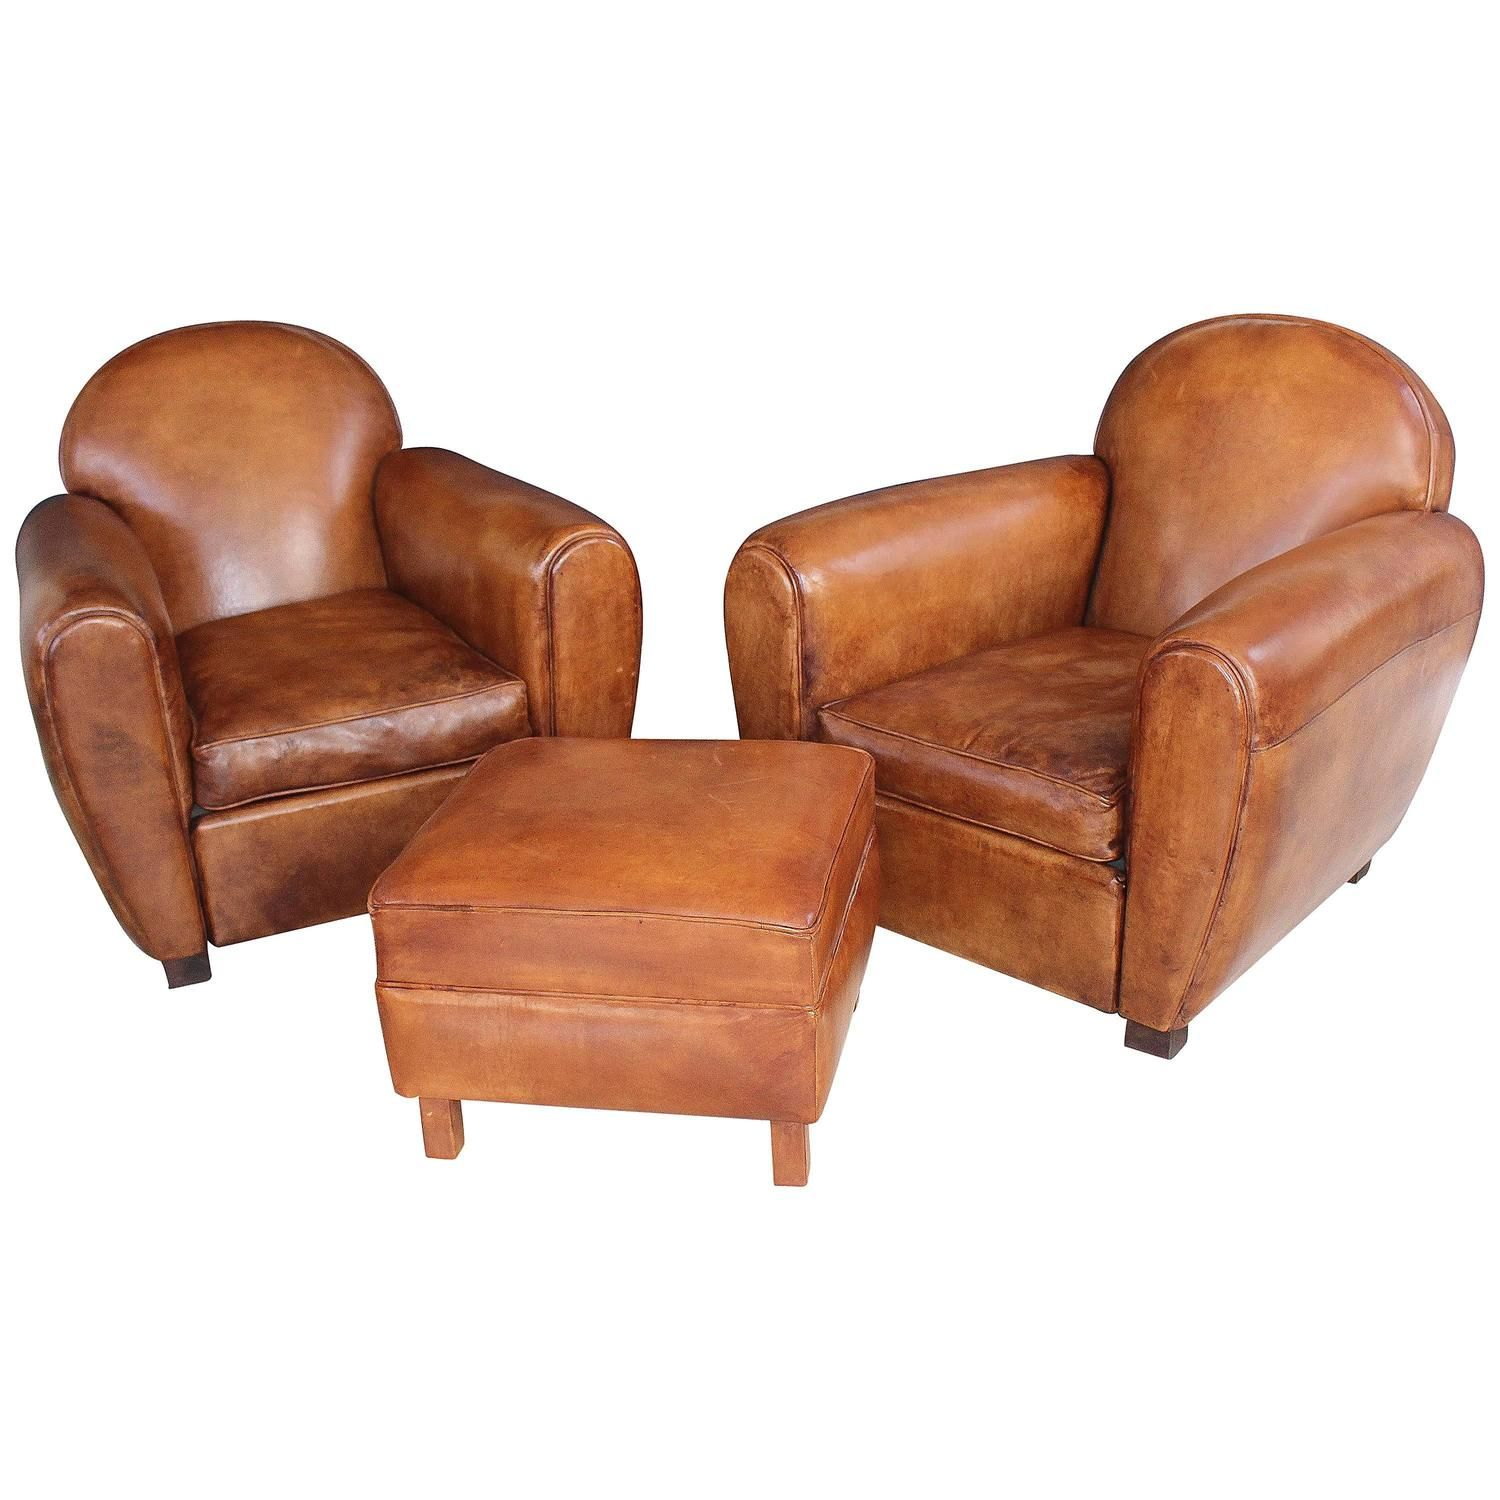 Sensational Pin By Sylvie Moss On Furnish In 2019 Leather Club Chairs Ncnpc Chair Design For Home Ncnpcorg